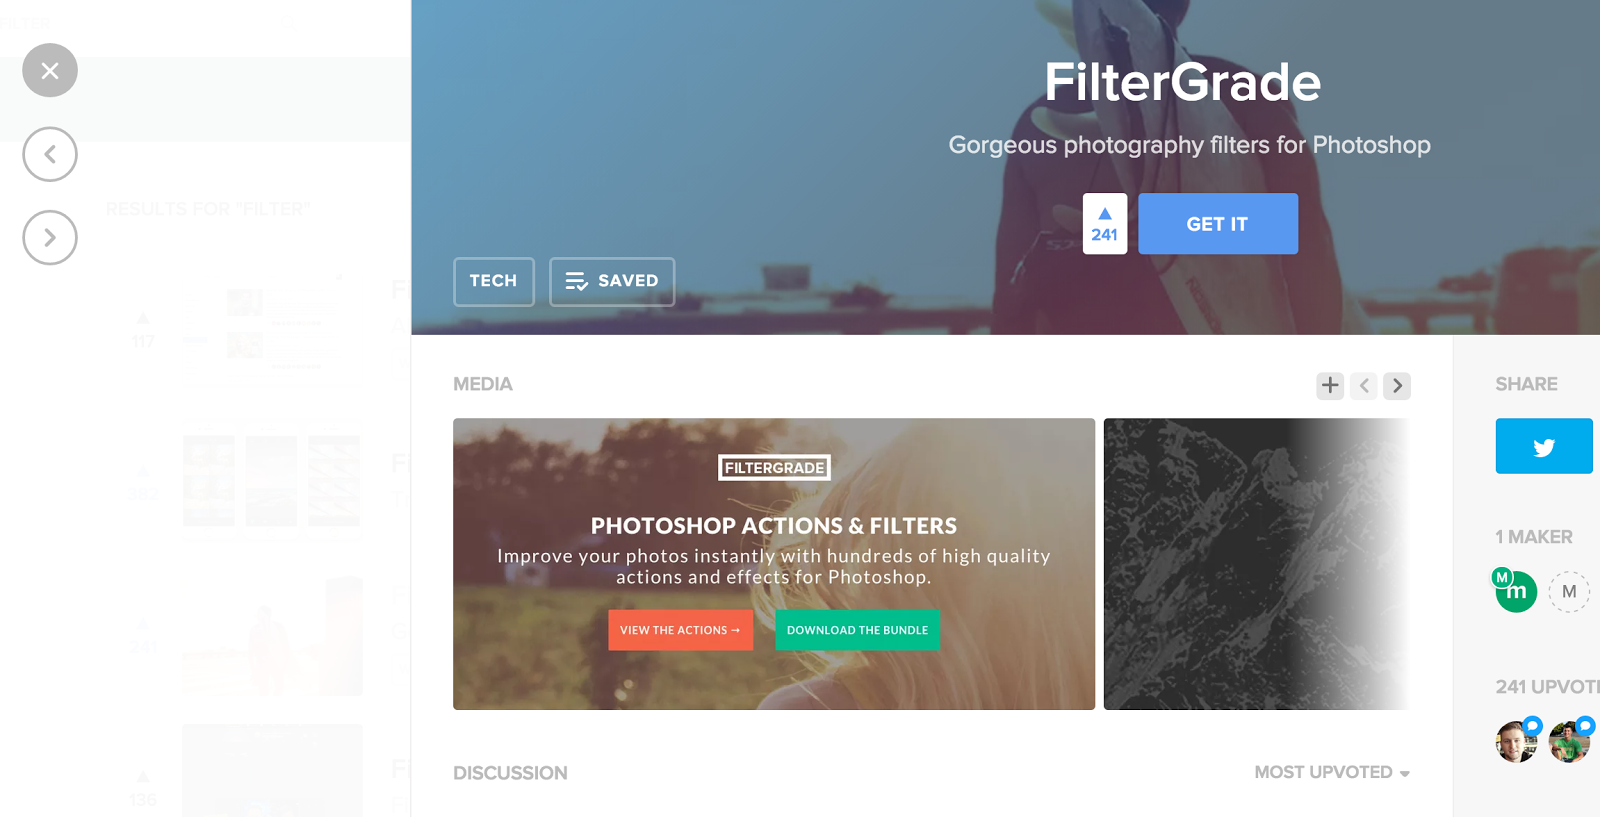 photoshop filtergrade